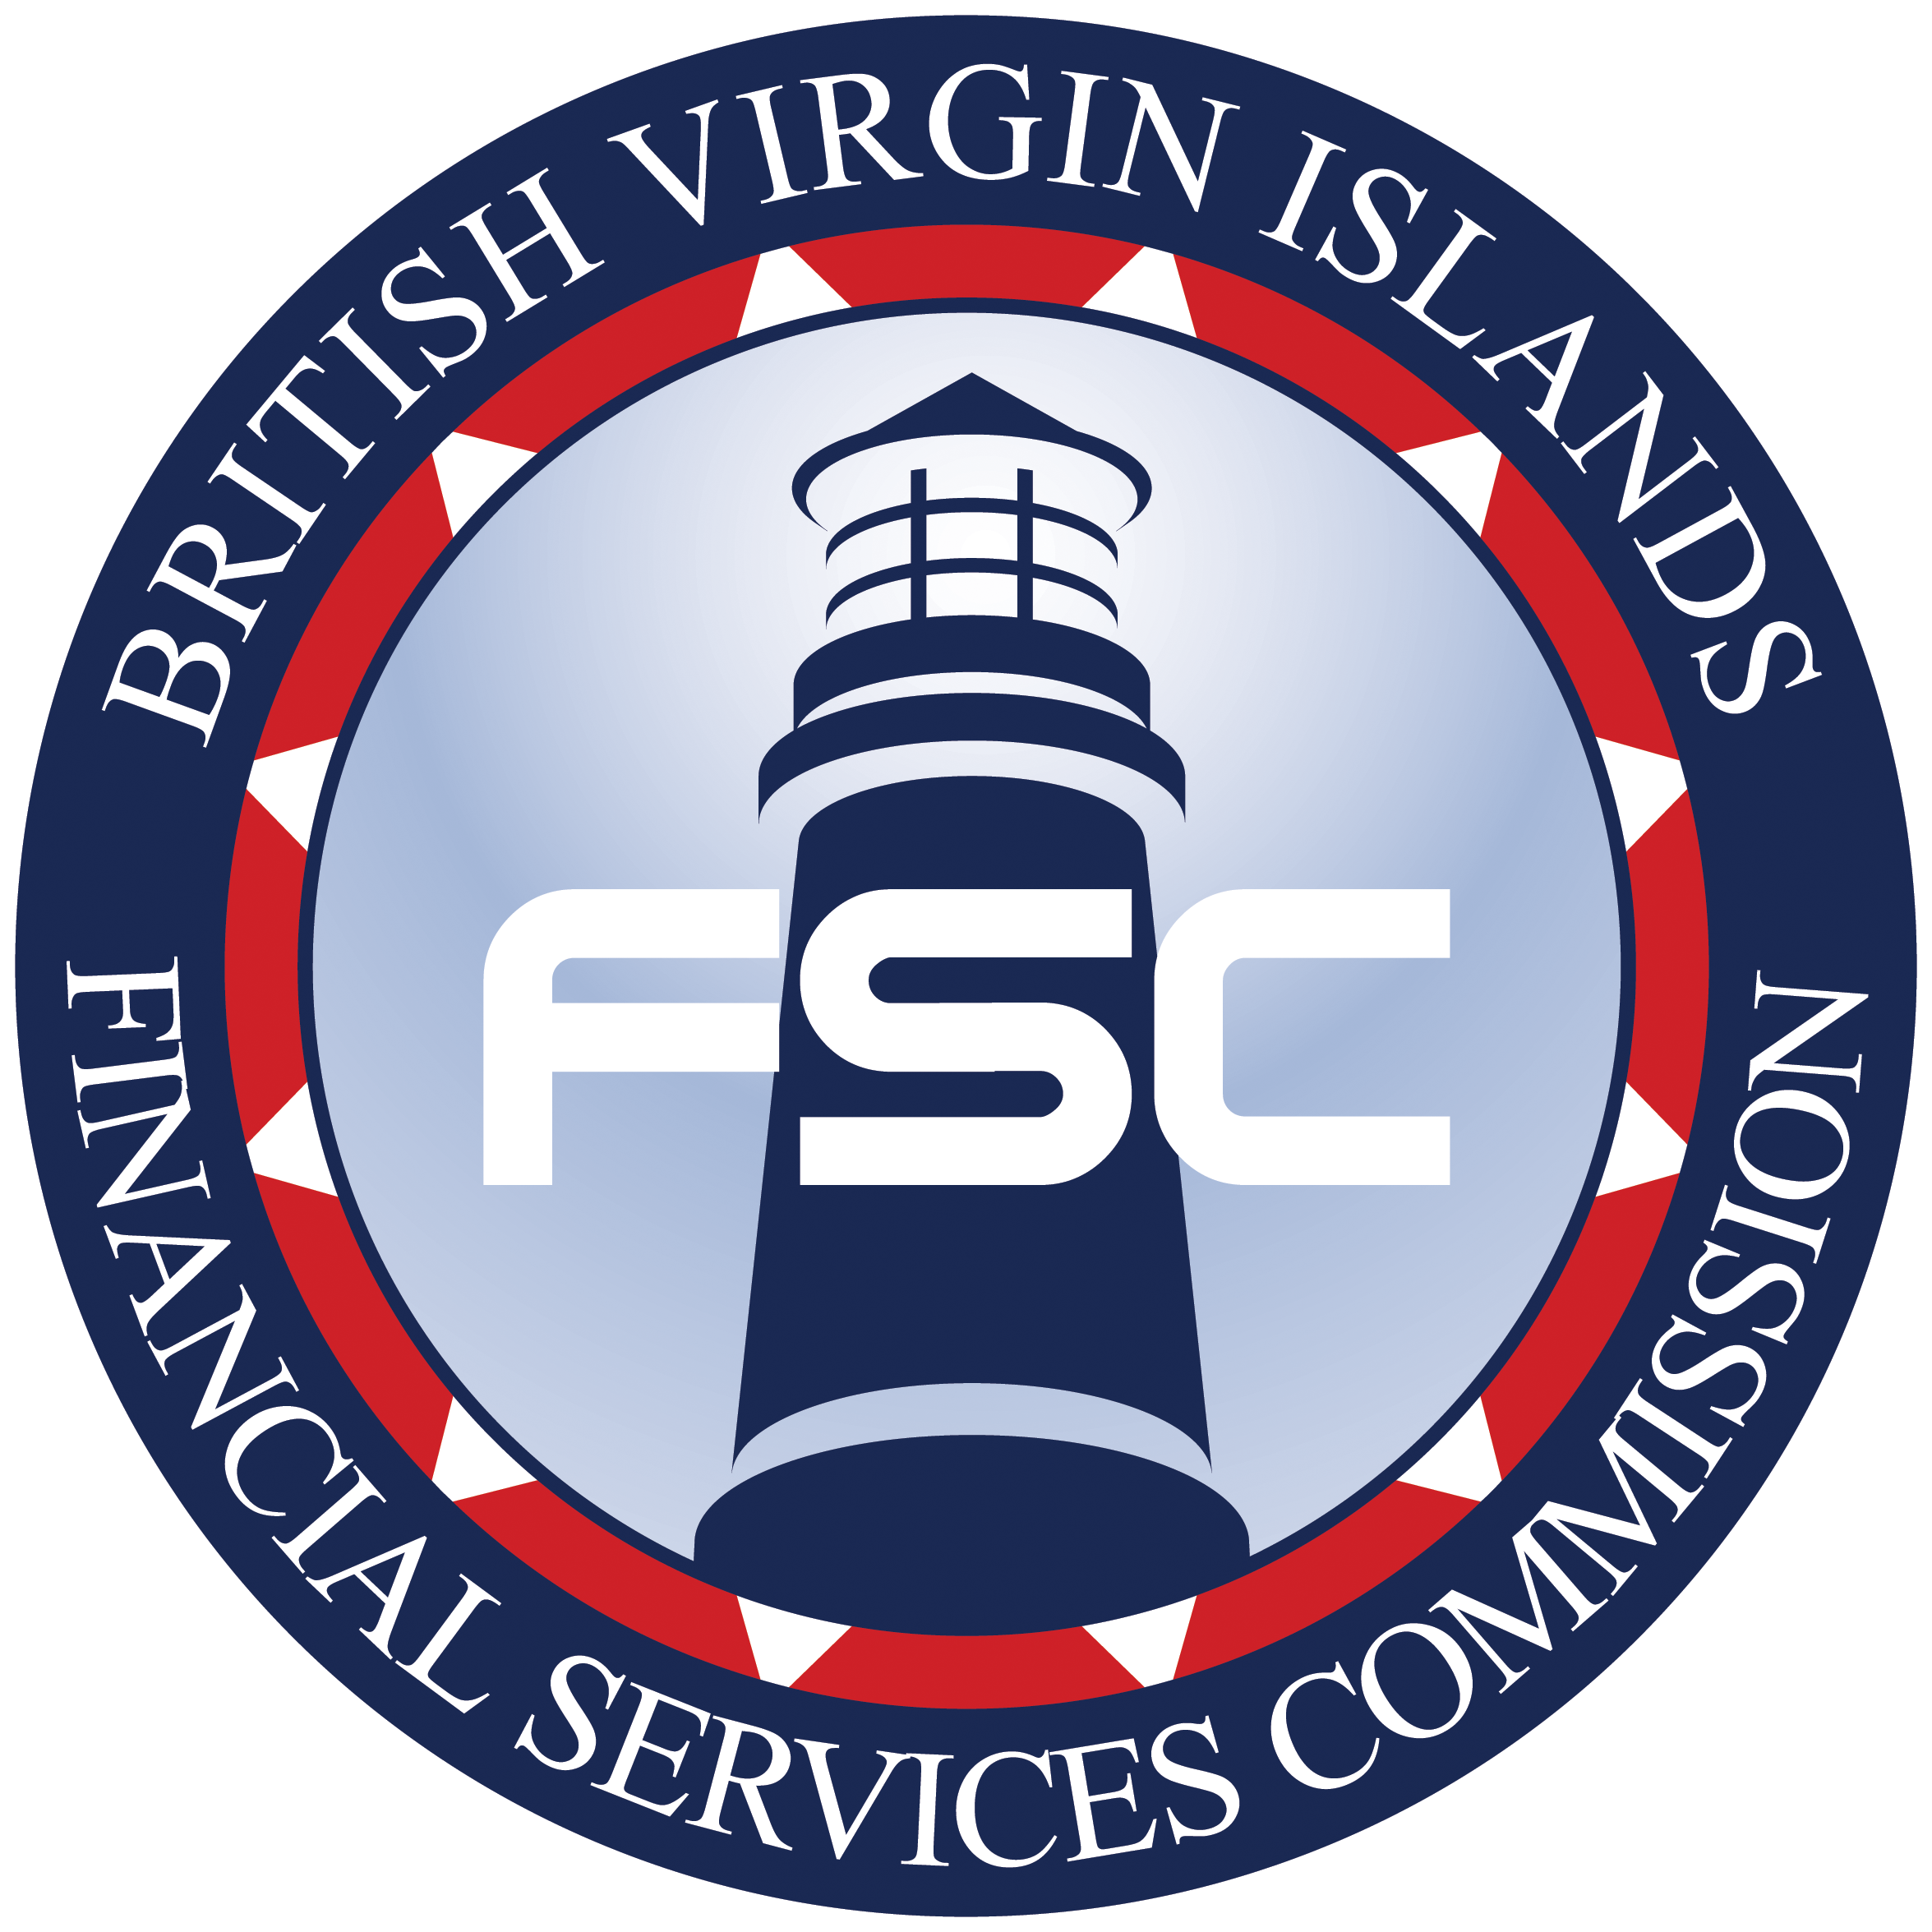 Following Hurricane Irma the BVI Sees an Increase in Q4 2017 Company Incorporations